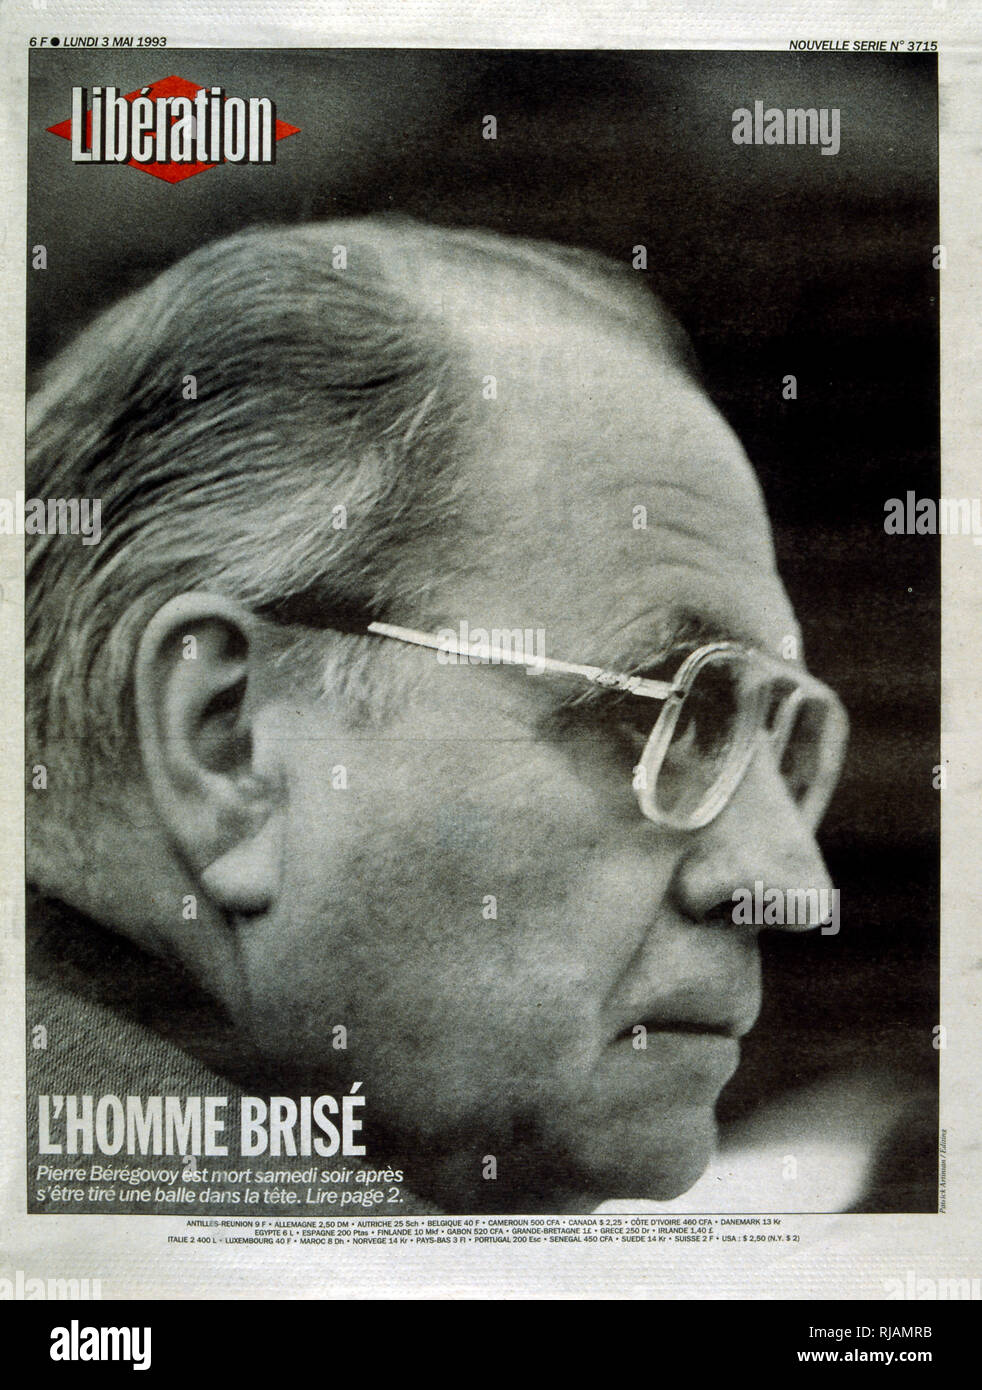 Cover of the French publication 'Liberation' after the suicide of Pierre Beregovoy, May 1993. Pierre Eugene Beregovoy (1925 - 1 May 1993) was a French politician who served as Prime Minister of France under President Francois Mitterrand from 2 April 1992 to 29 March 1993. He committed suicide. His successor as Prime Minister, Edouard Balladur, is seen leaving the funeral in Nevers. - Stock Image